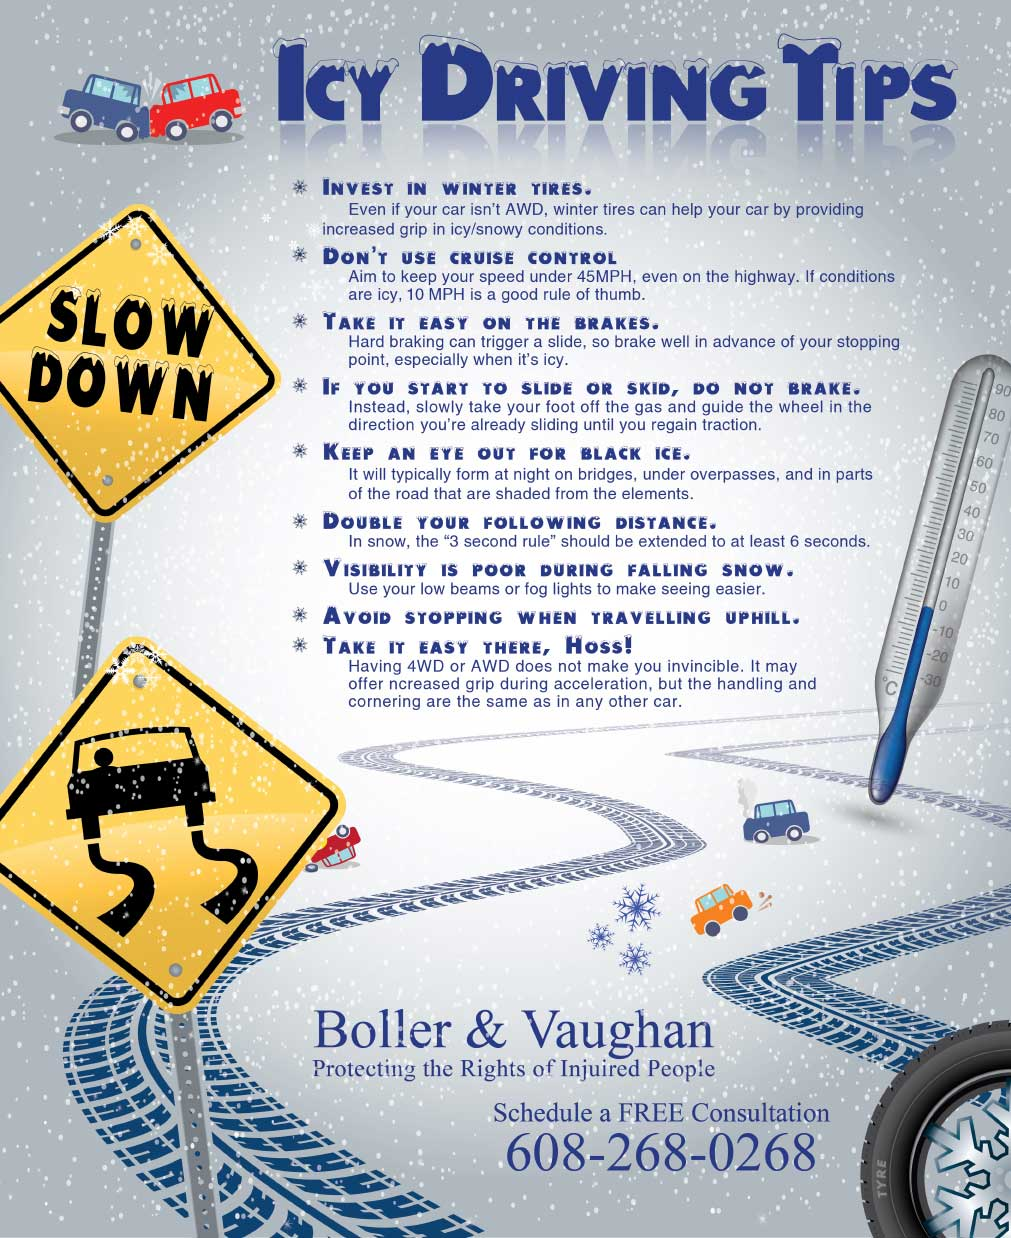 Madison Icy Road Driving Tips